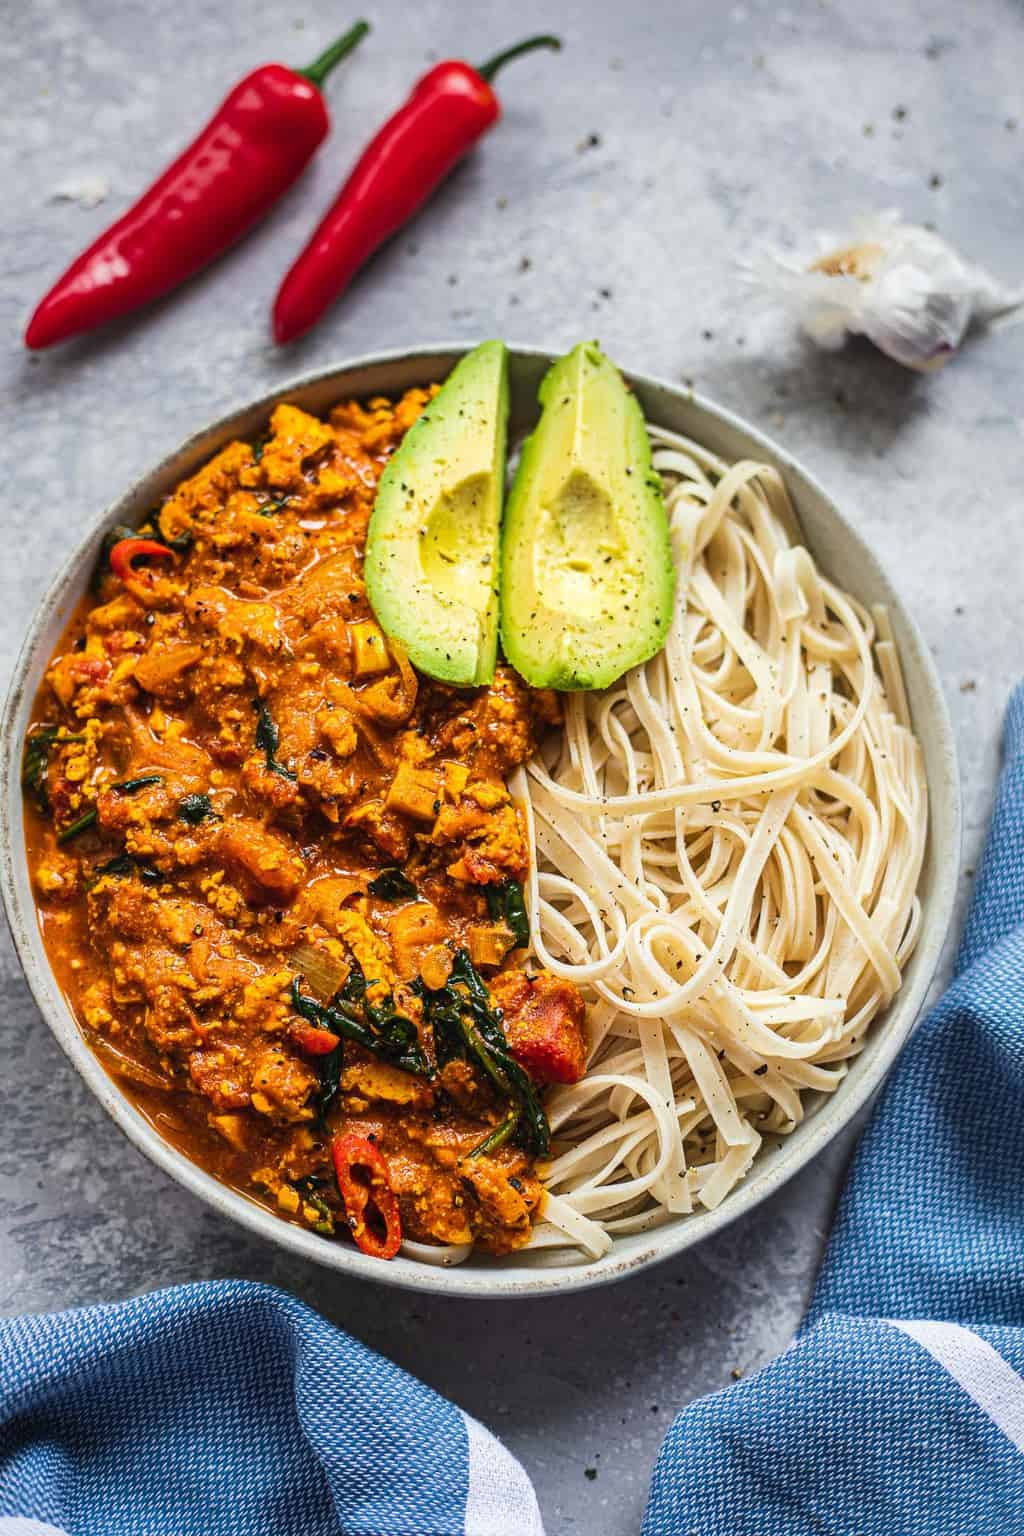 Vegan curry in a bowl with noodles